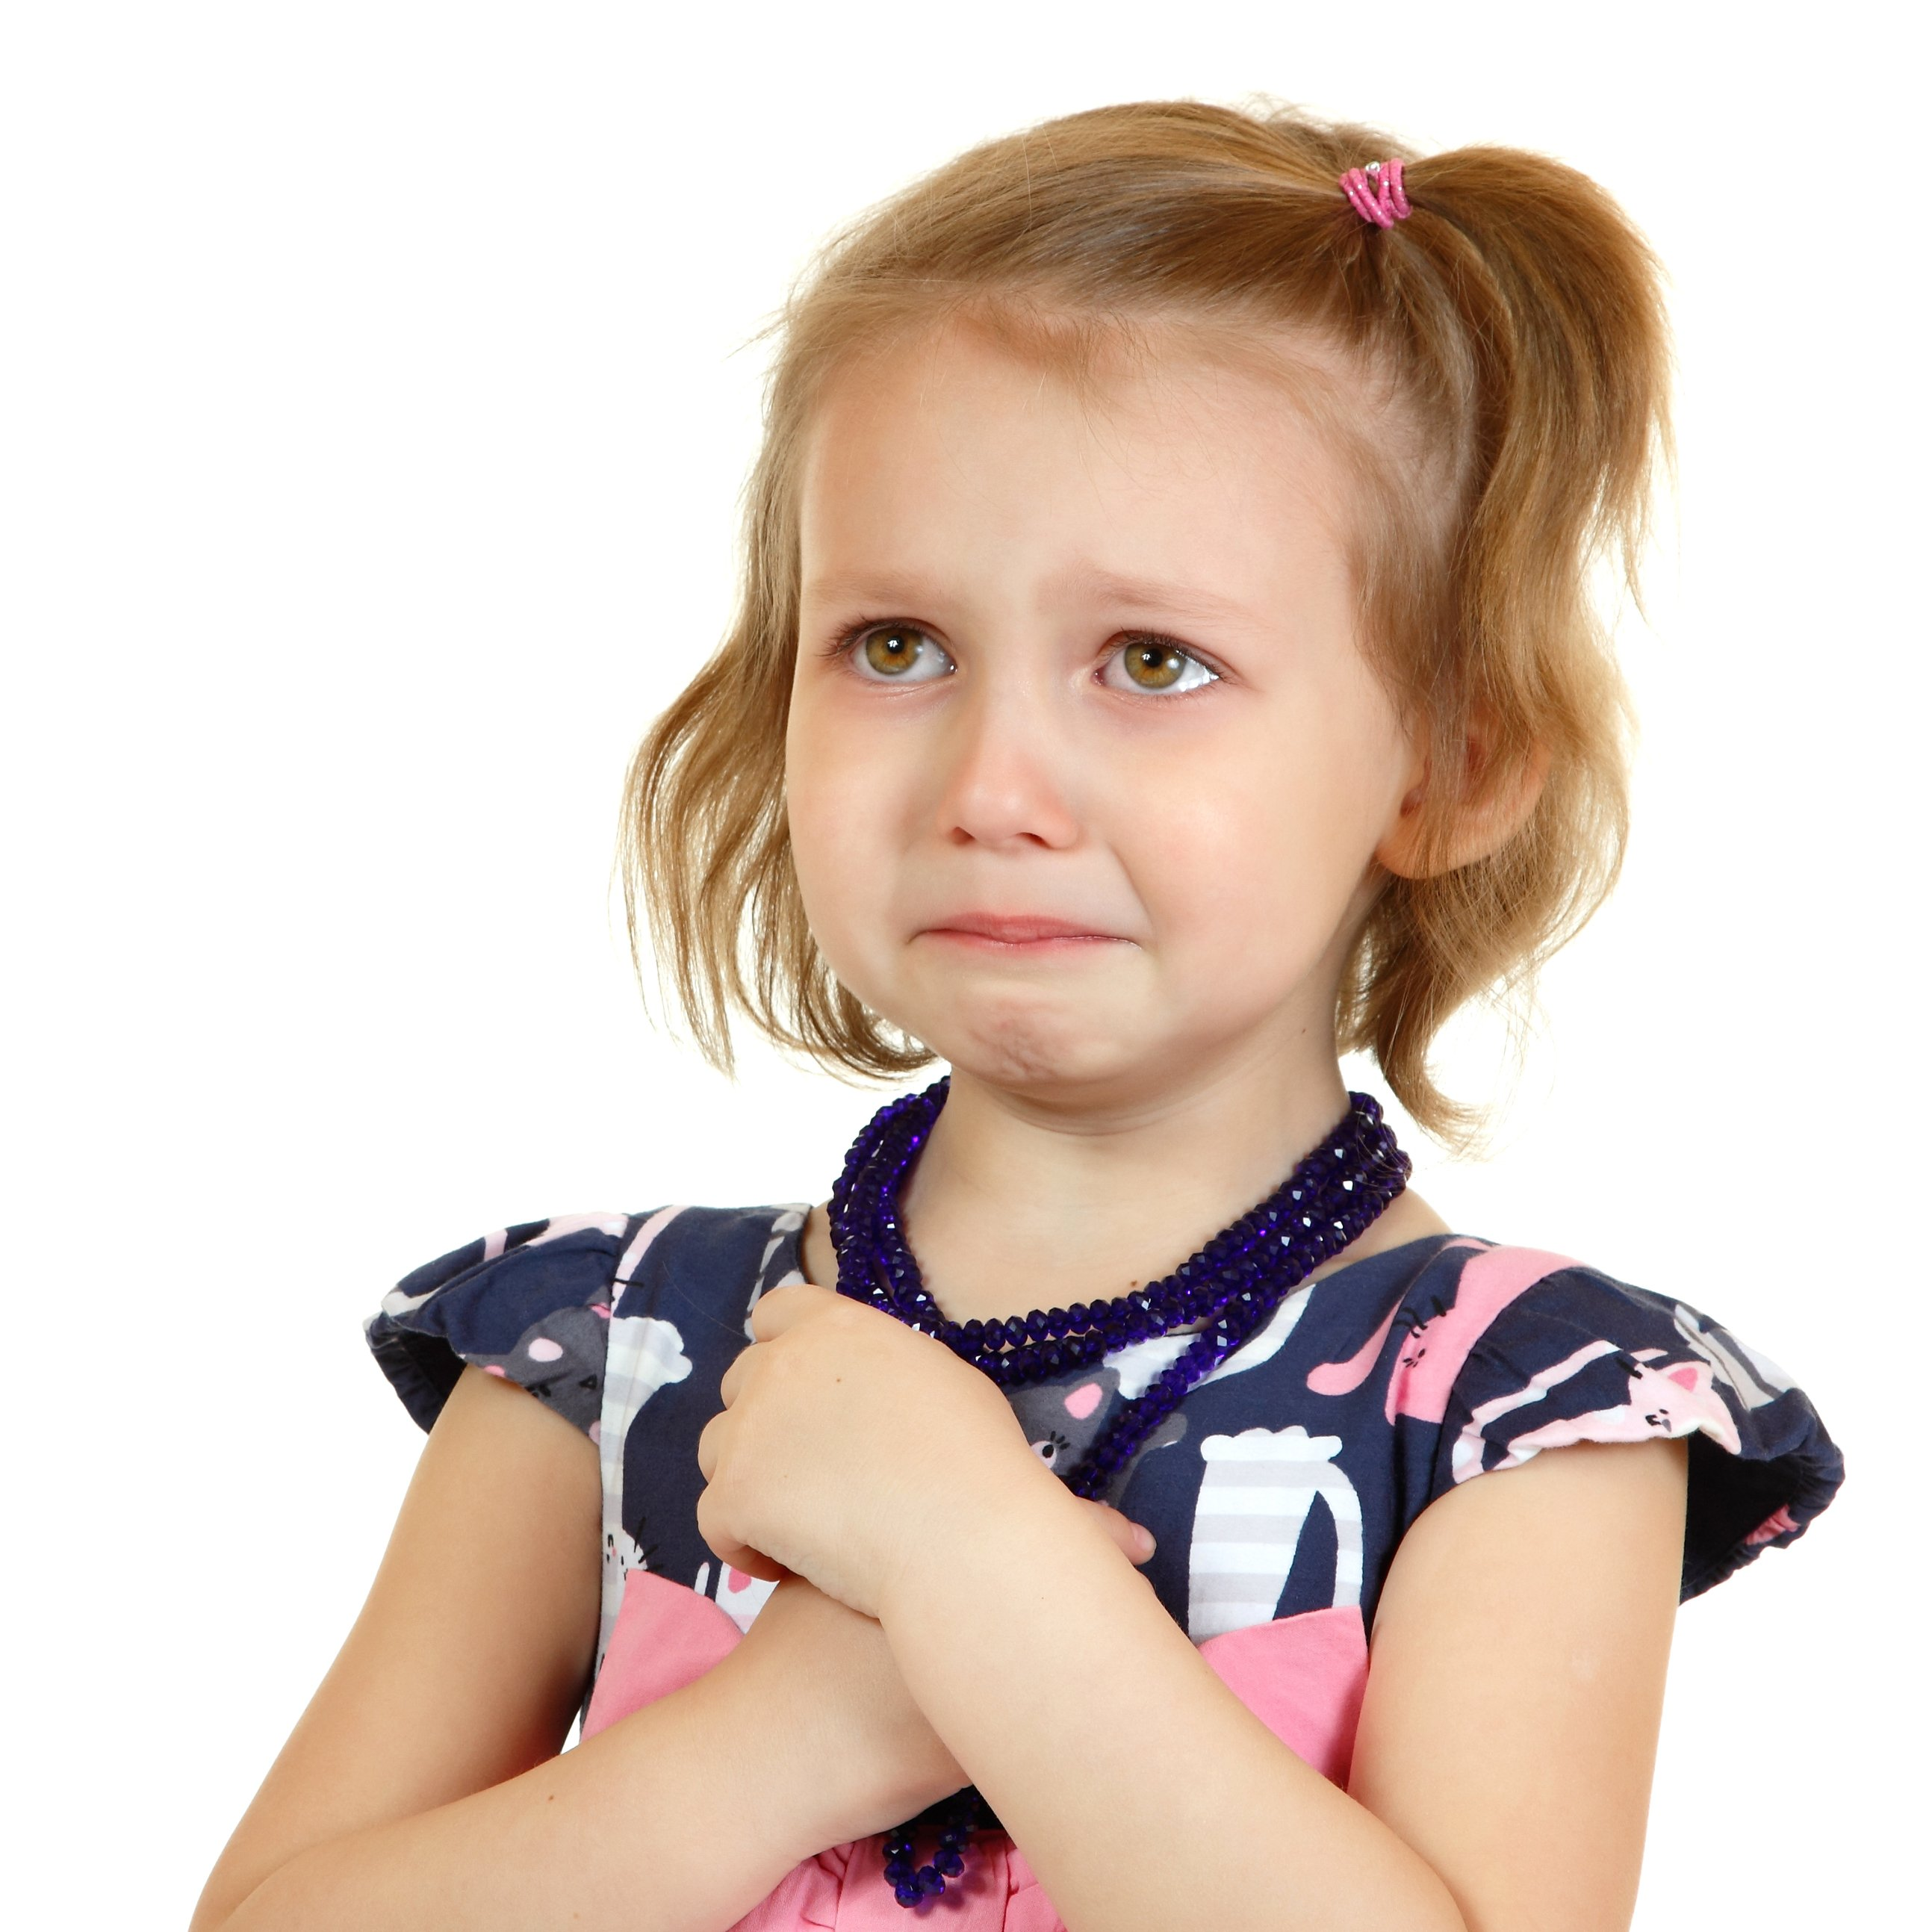 A little girl crying.   Source: Shutterstock